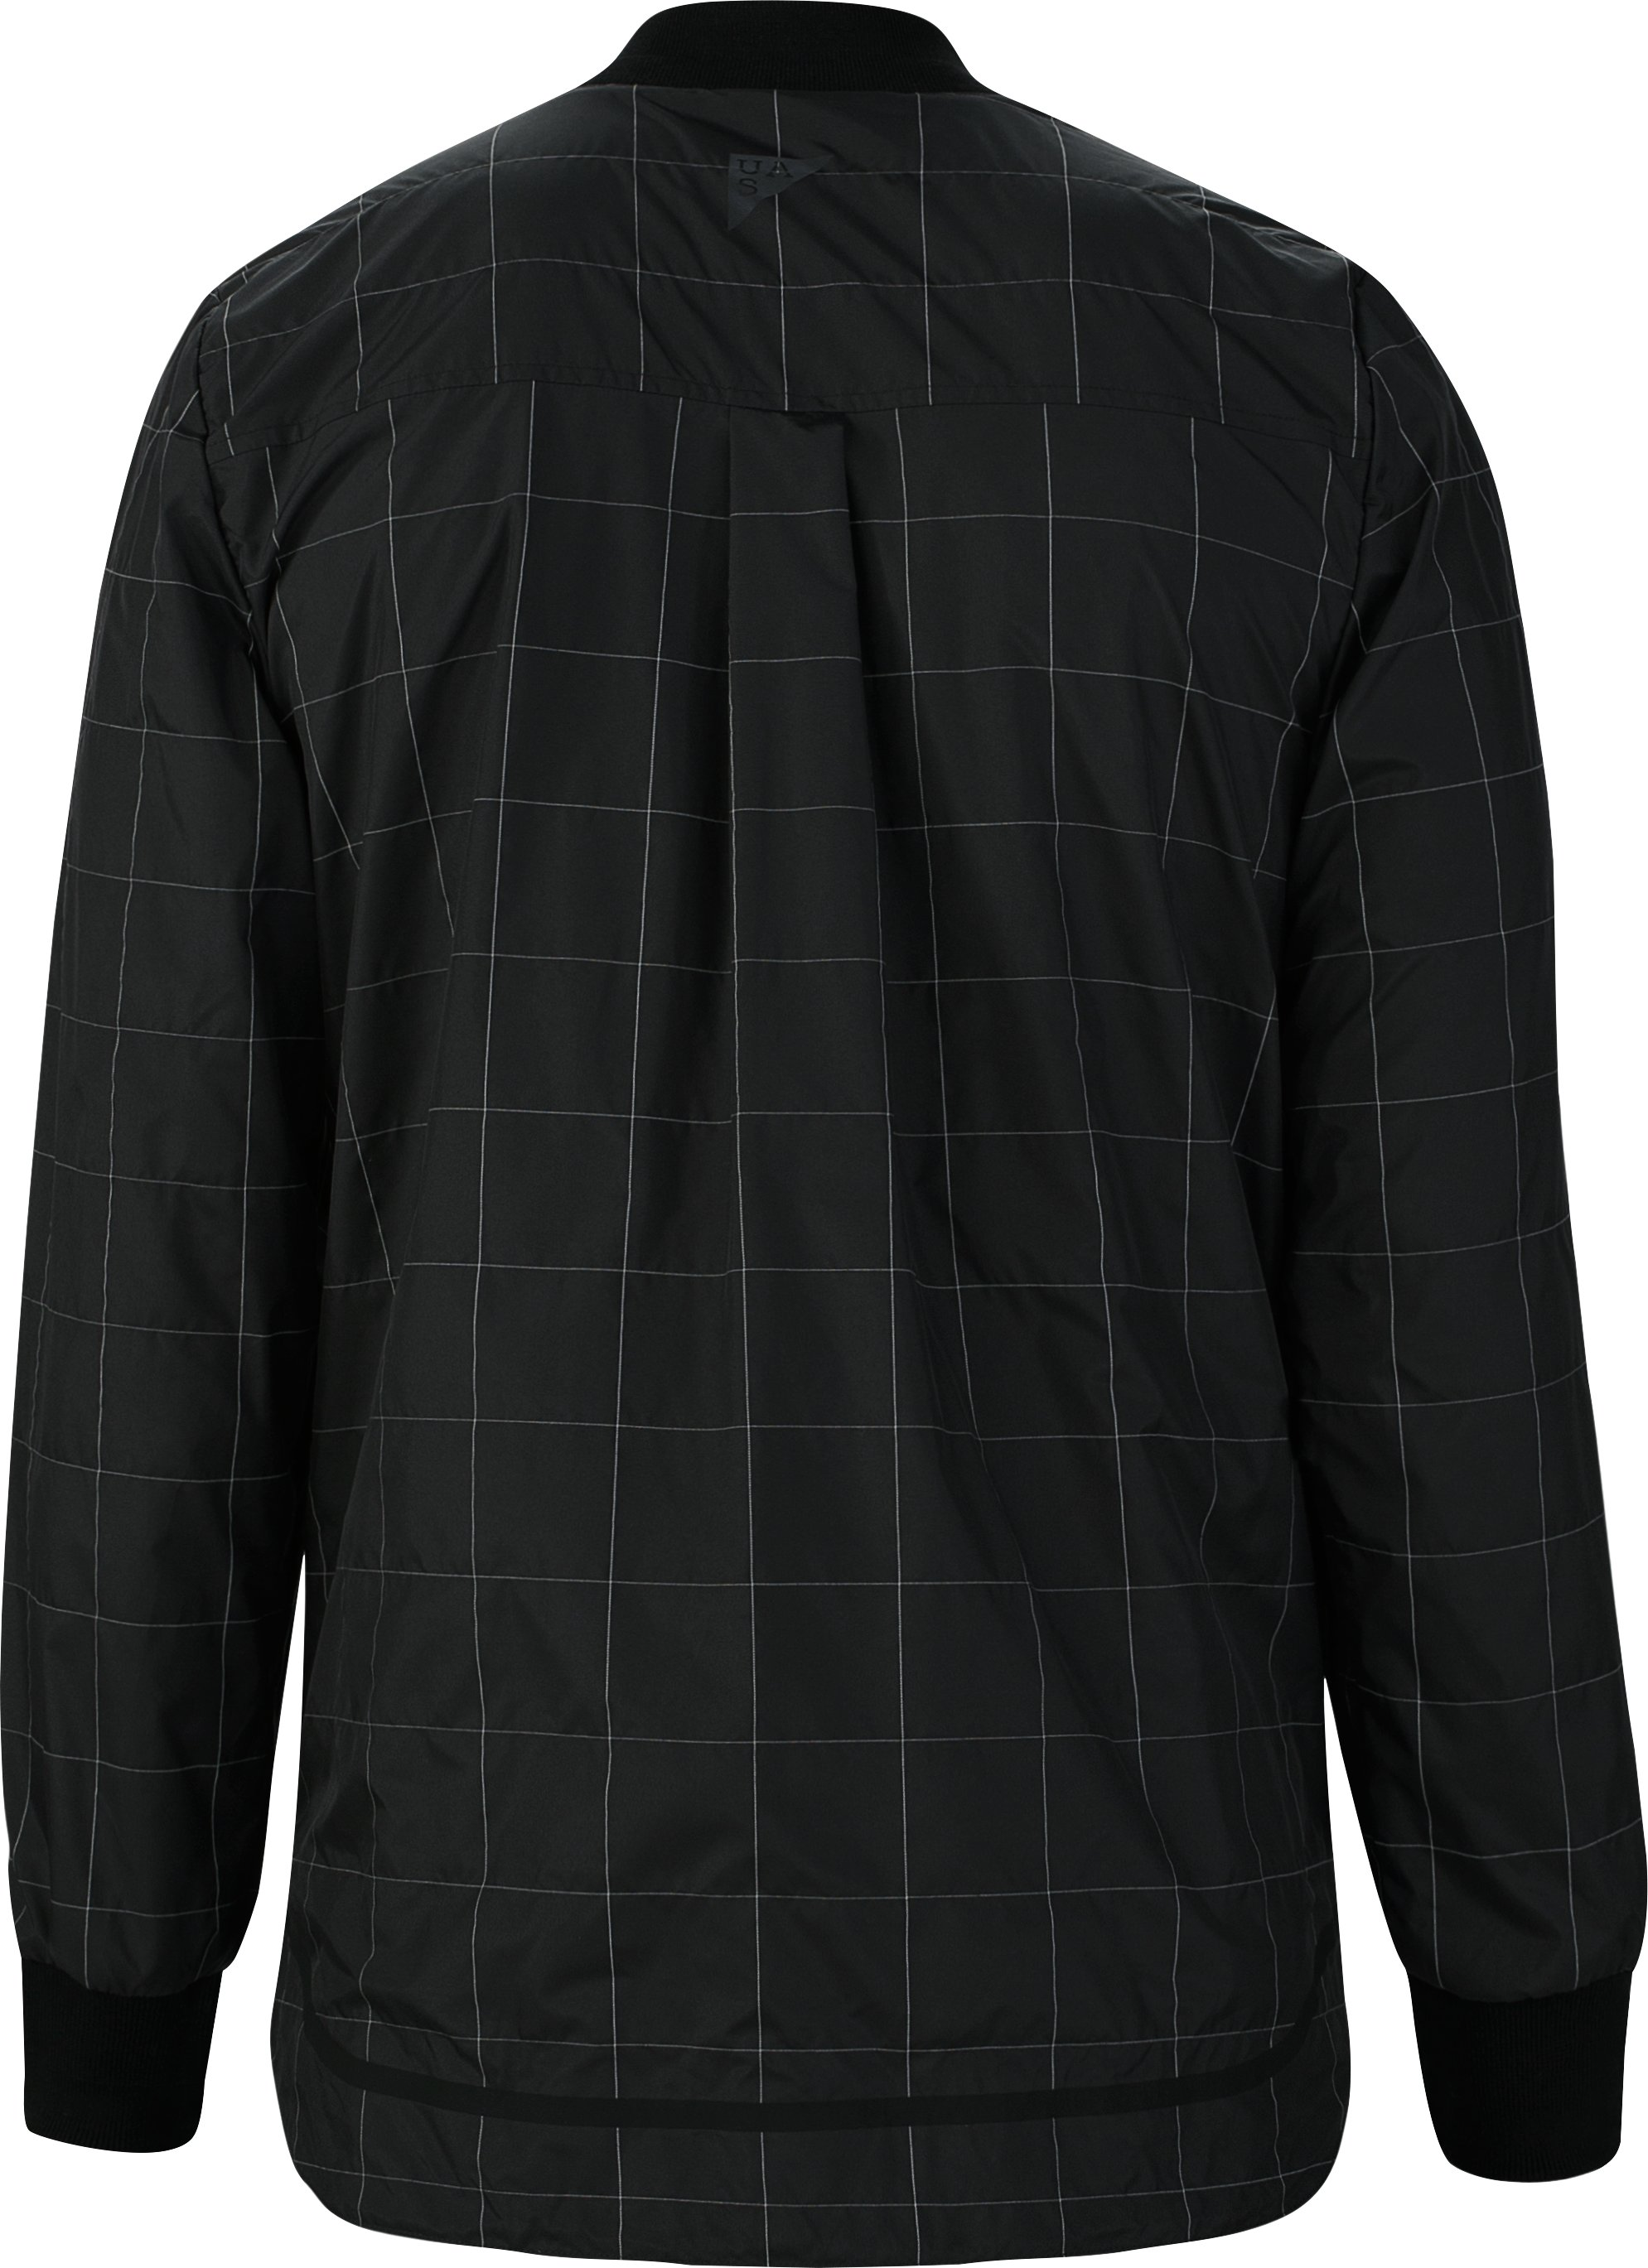 Men's UAS Fieldhouse Reflective Coaches Jacket, Black